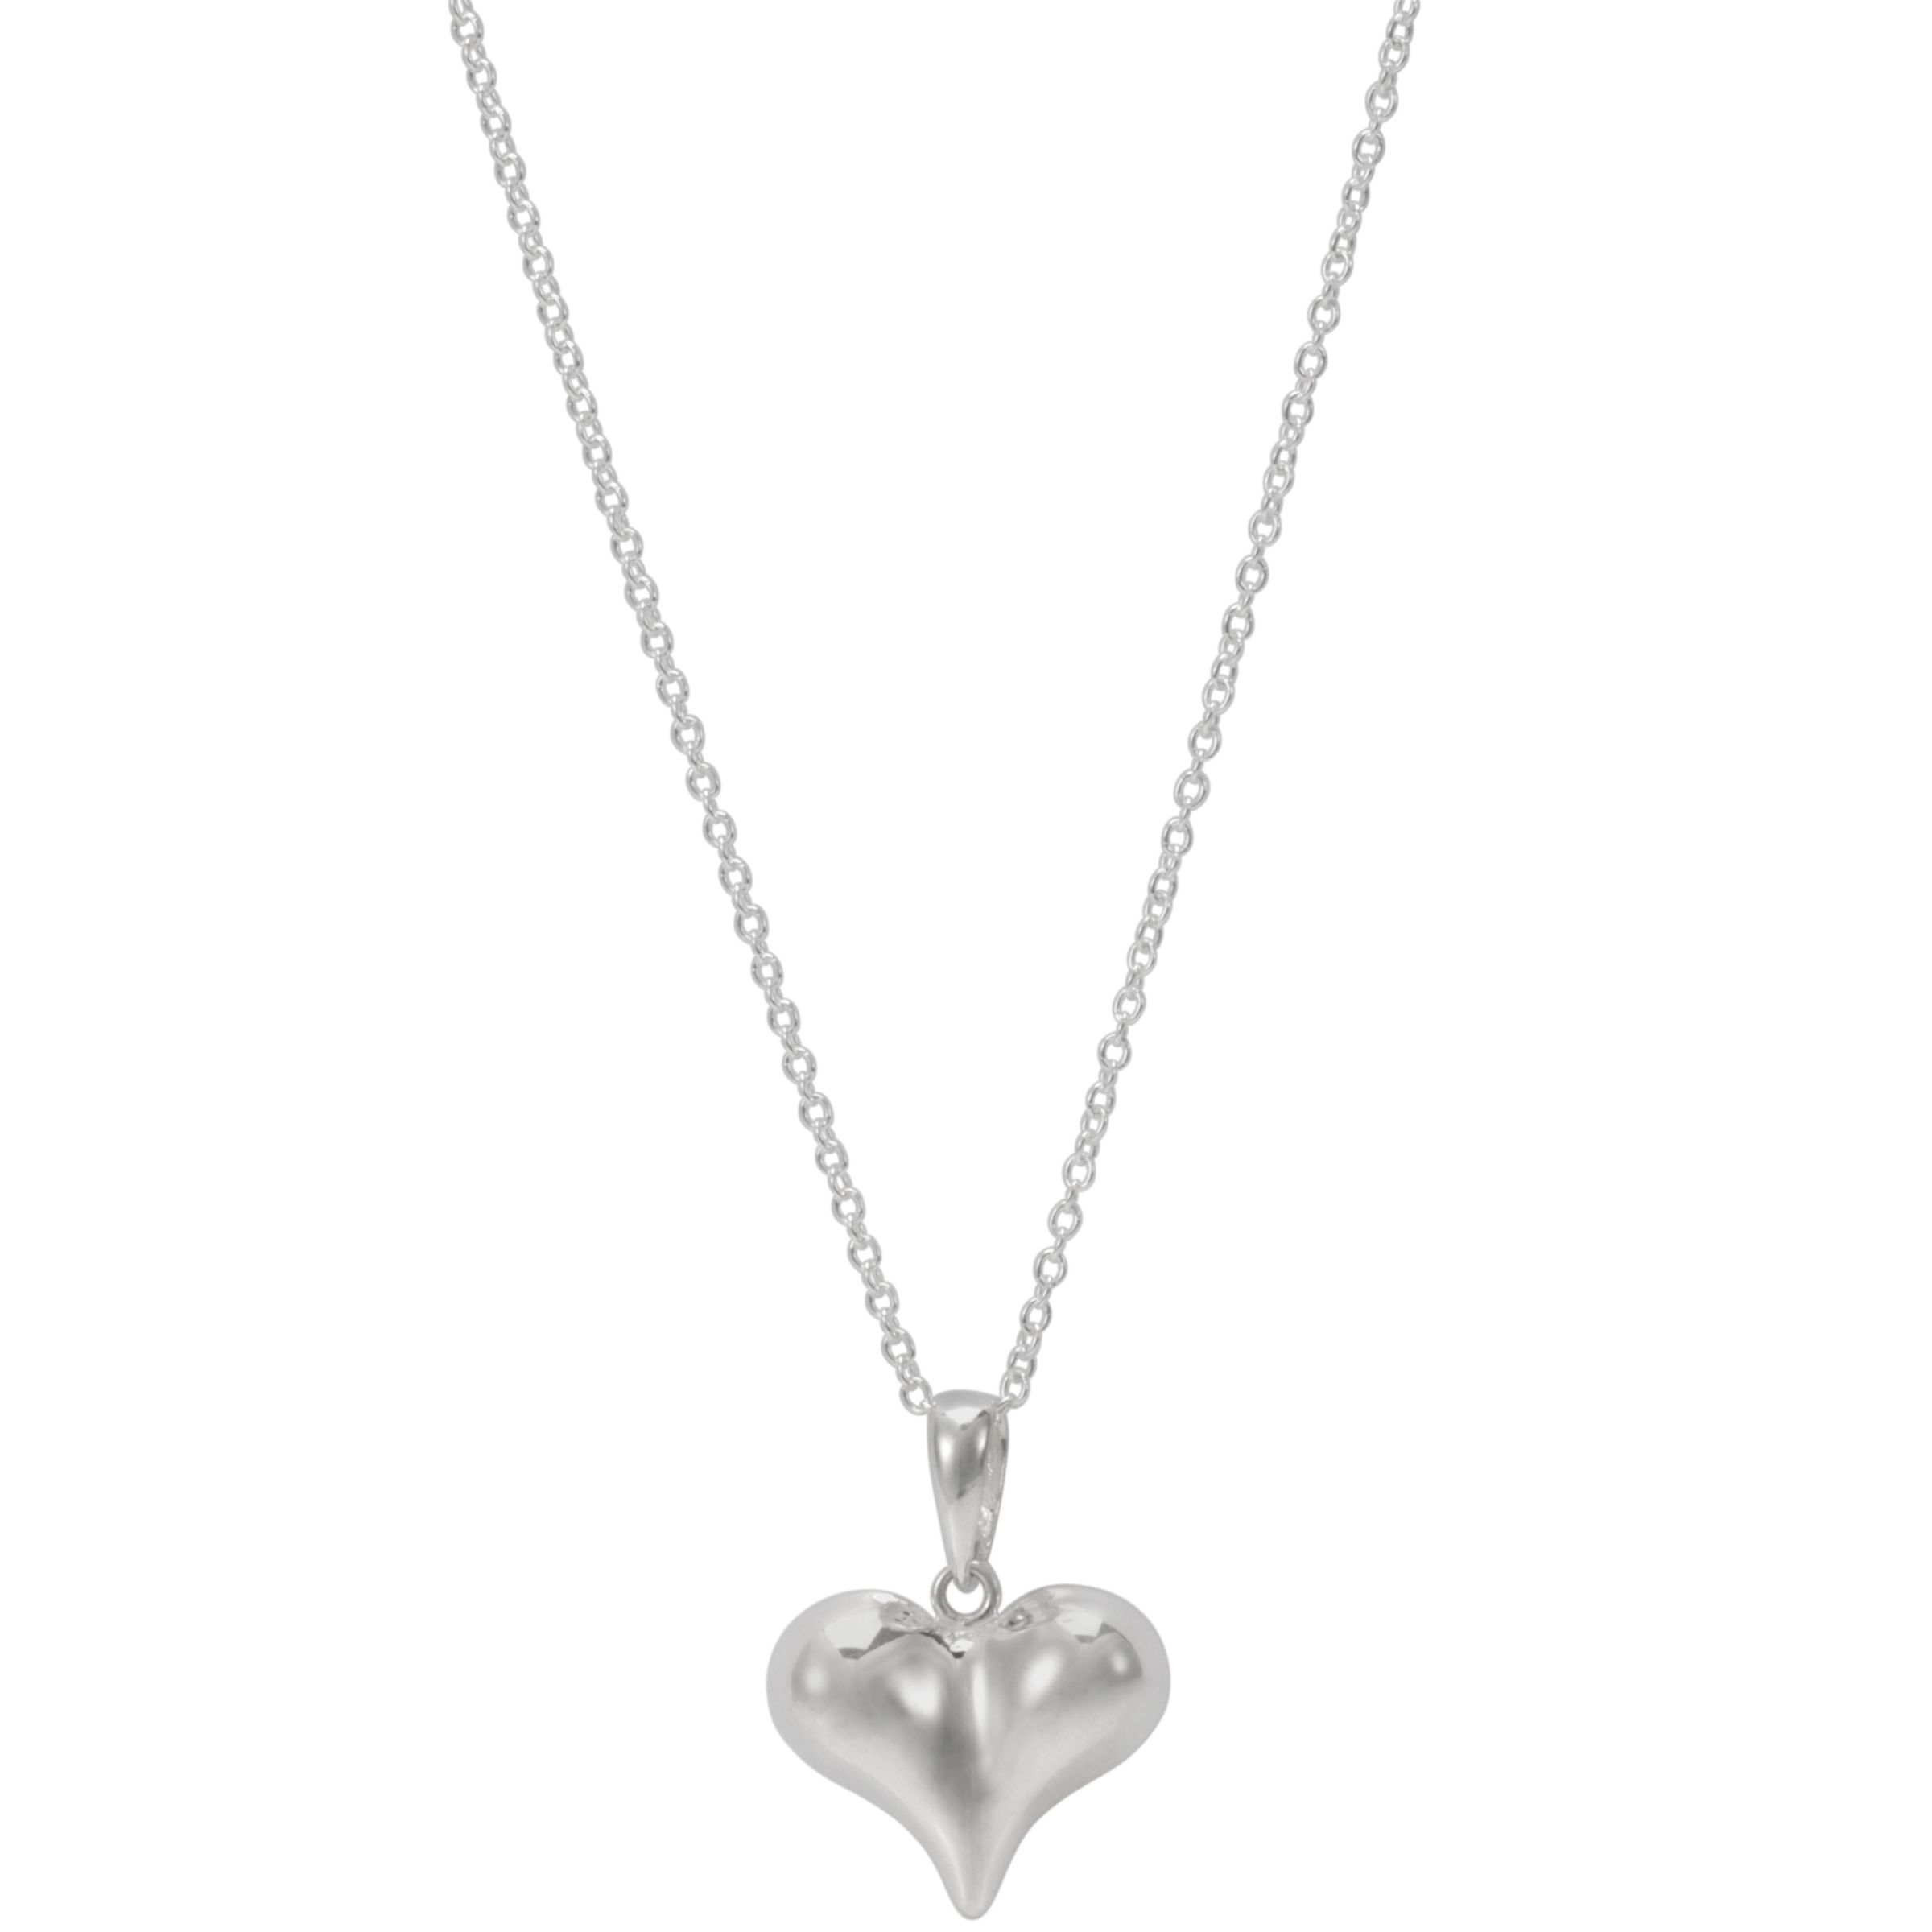 Andea Silver Pointed Puffed Heart Pendant Necklace